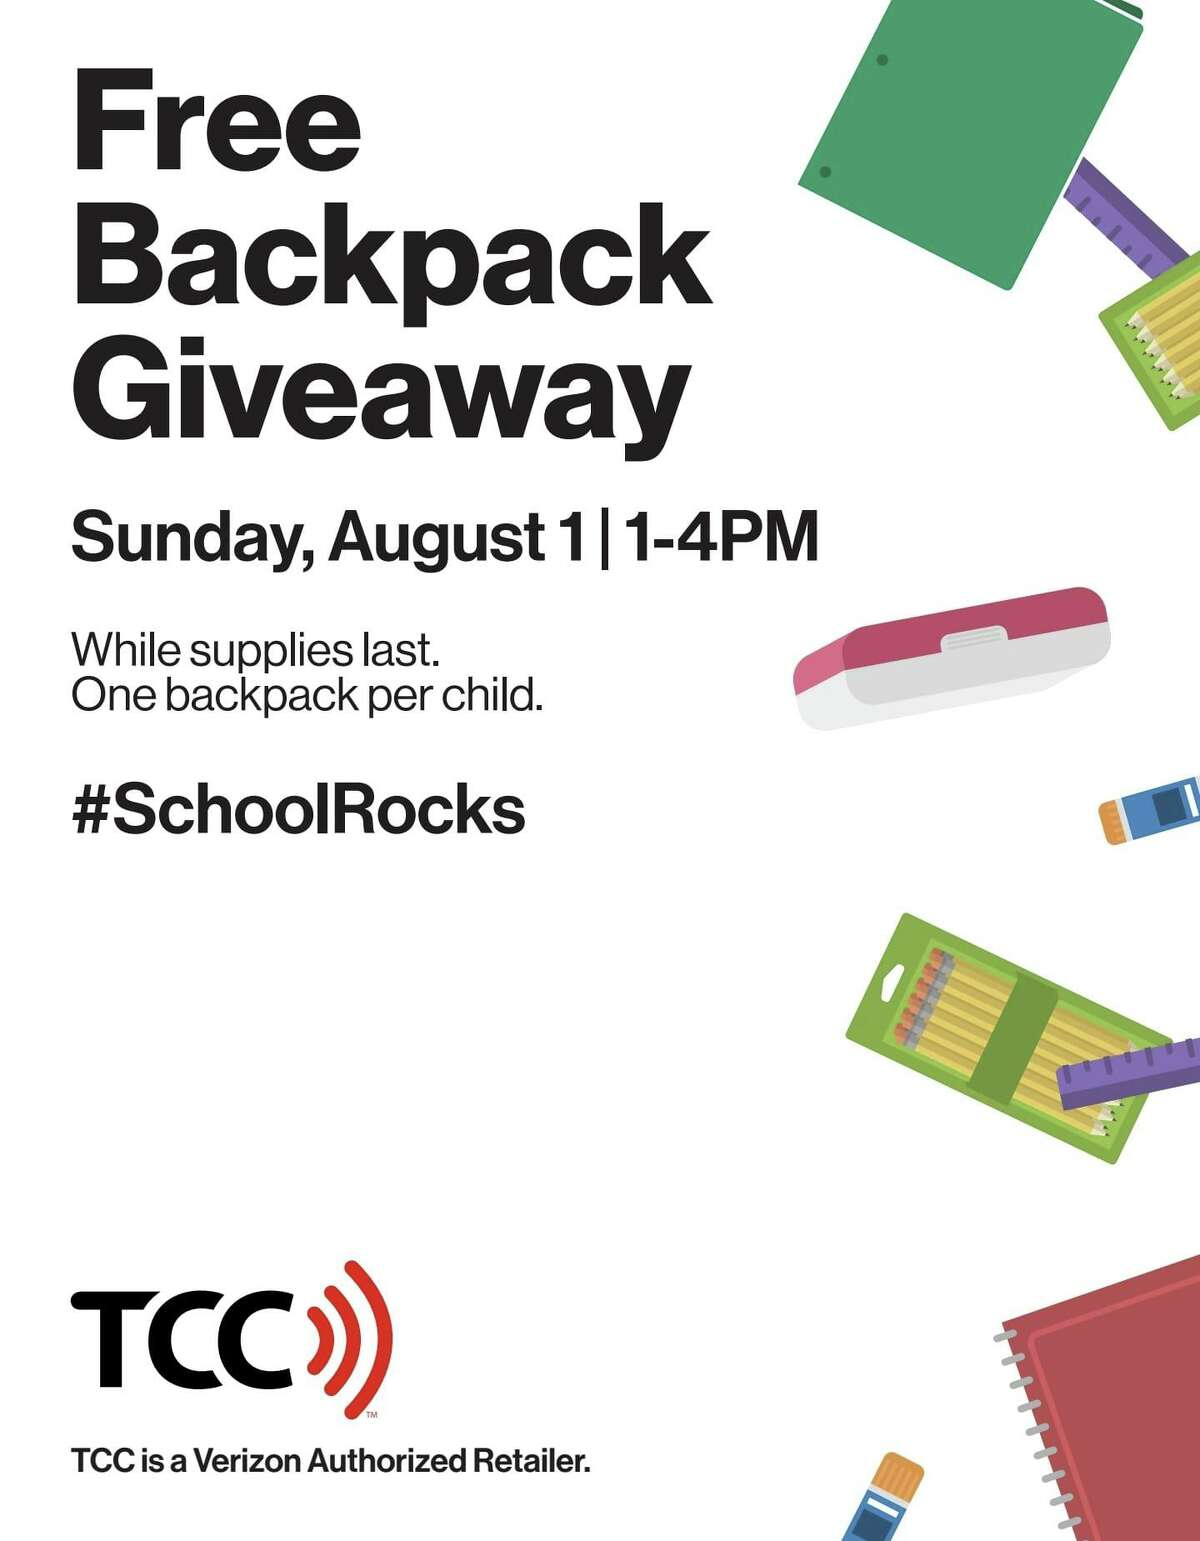 A poster advertises the Aug. 1 backpack giveaway in Old Saybrook in conjunction with TCC / Verizon.